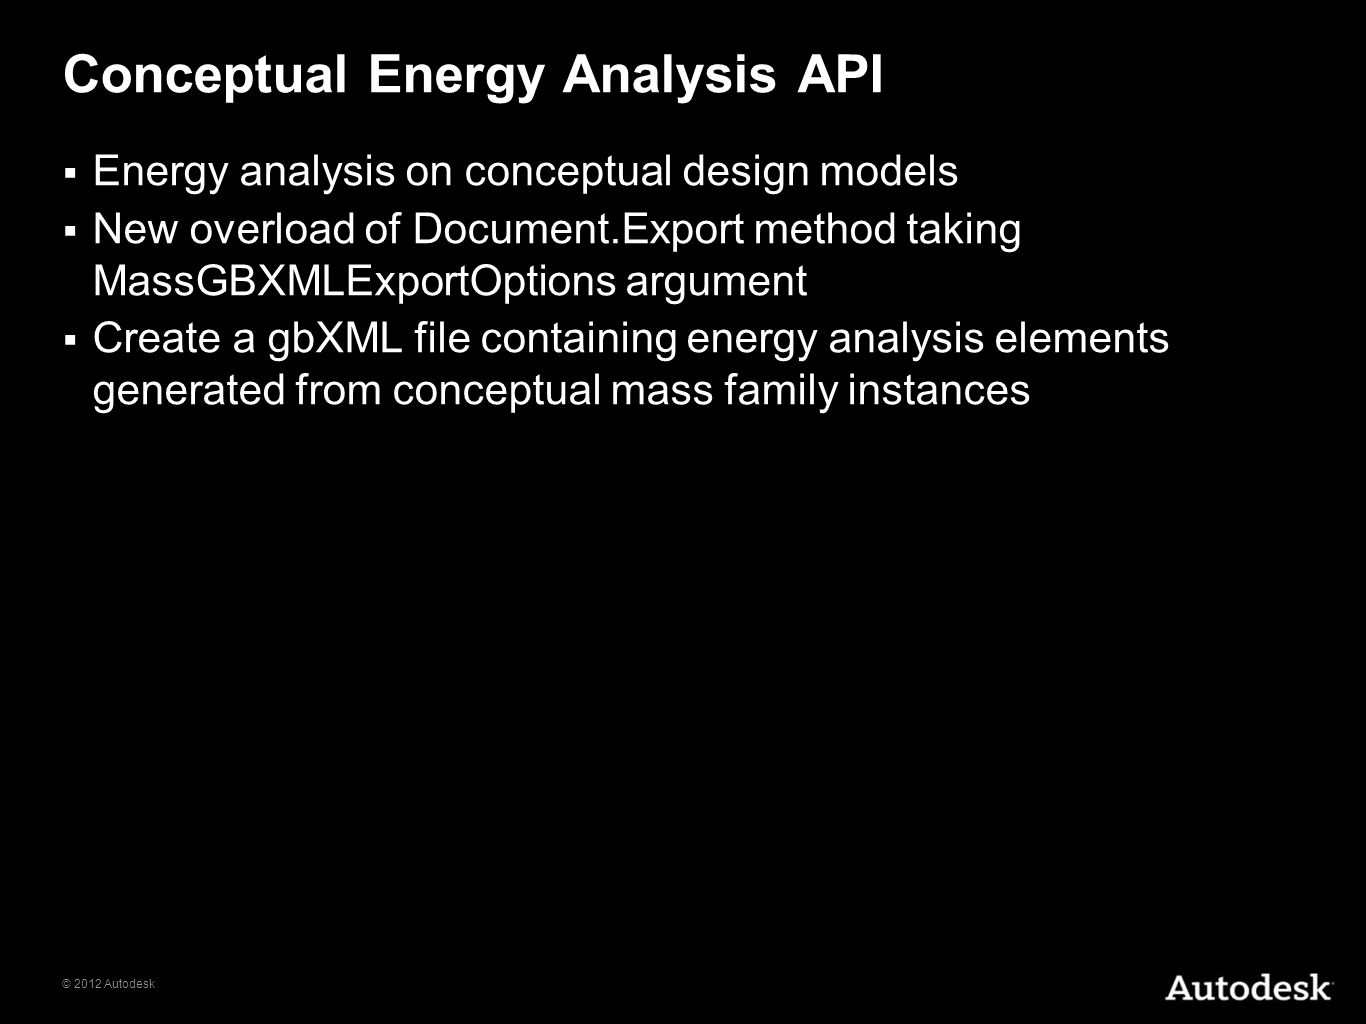 Conceptual Energy Analysis API